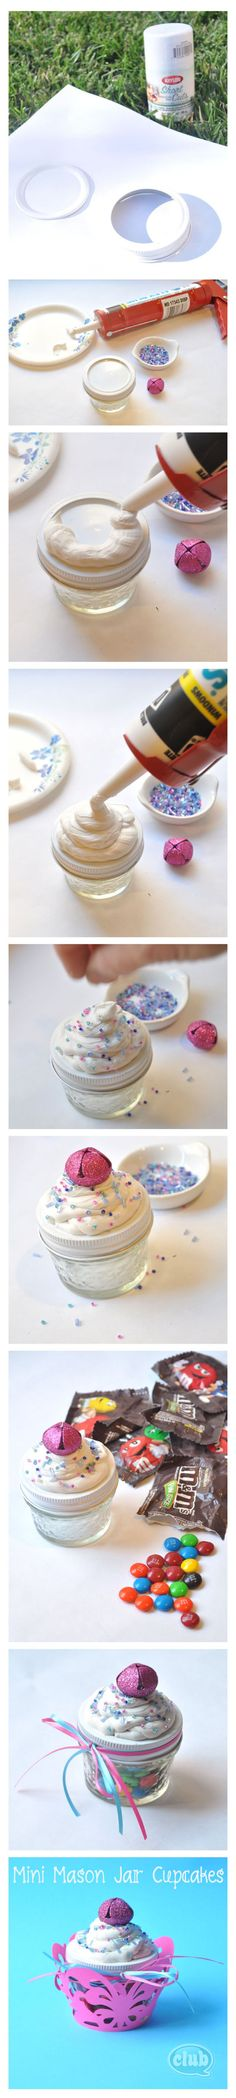 Candy Jar Cupcake with Caulk DYI Craft  #Cupcakes #DYI